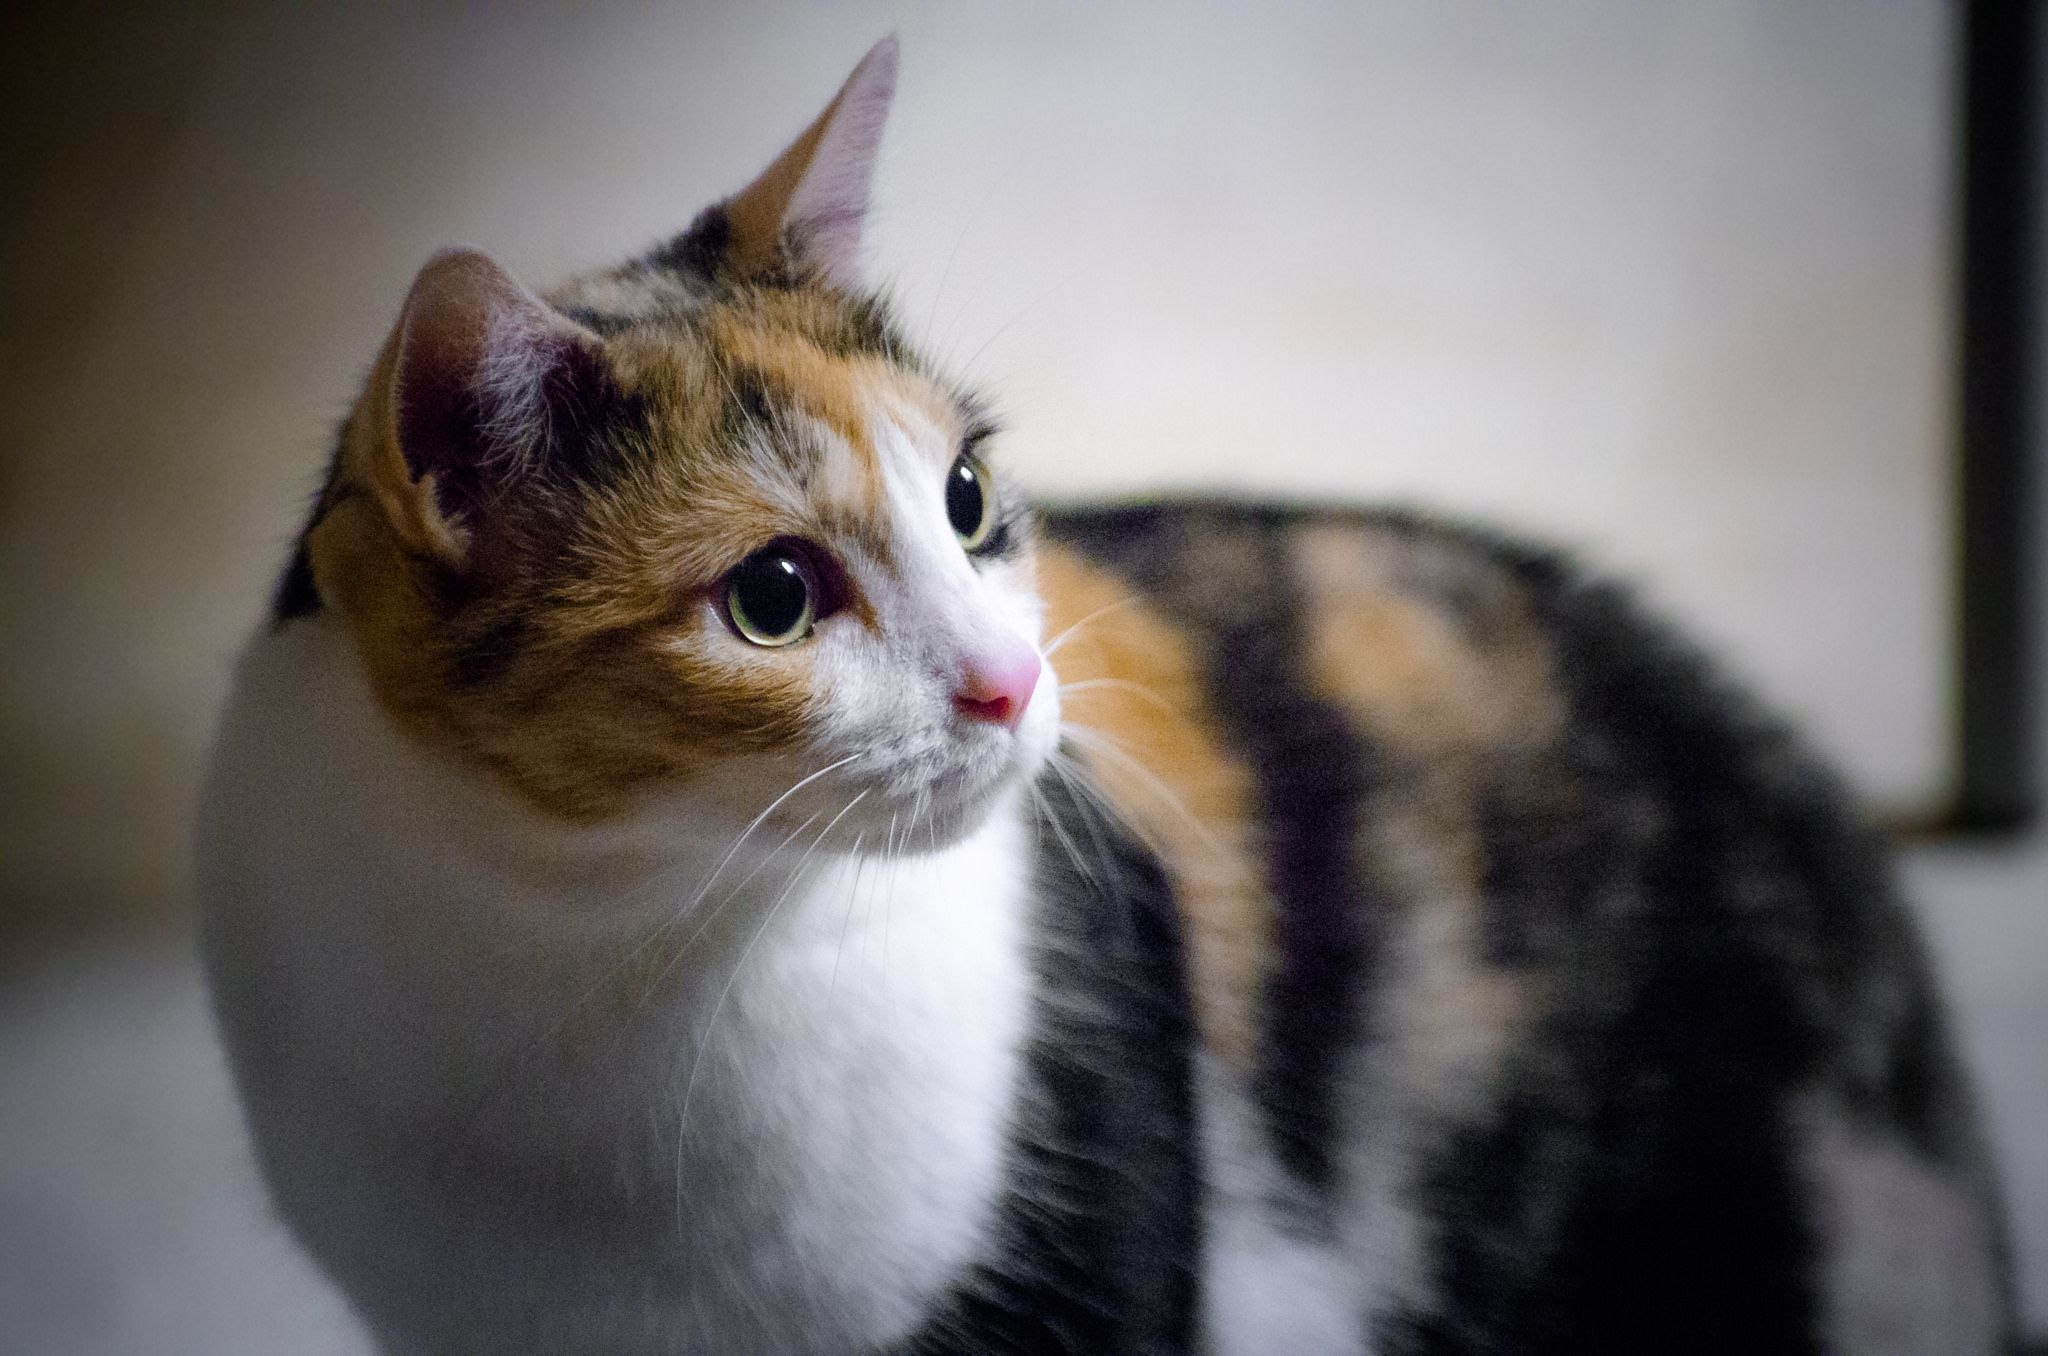 Cute Pictures Of Calico Cats And Kittens